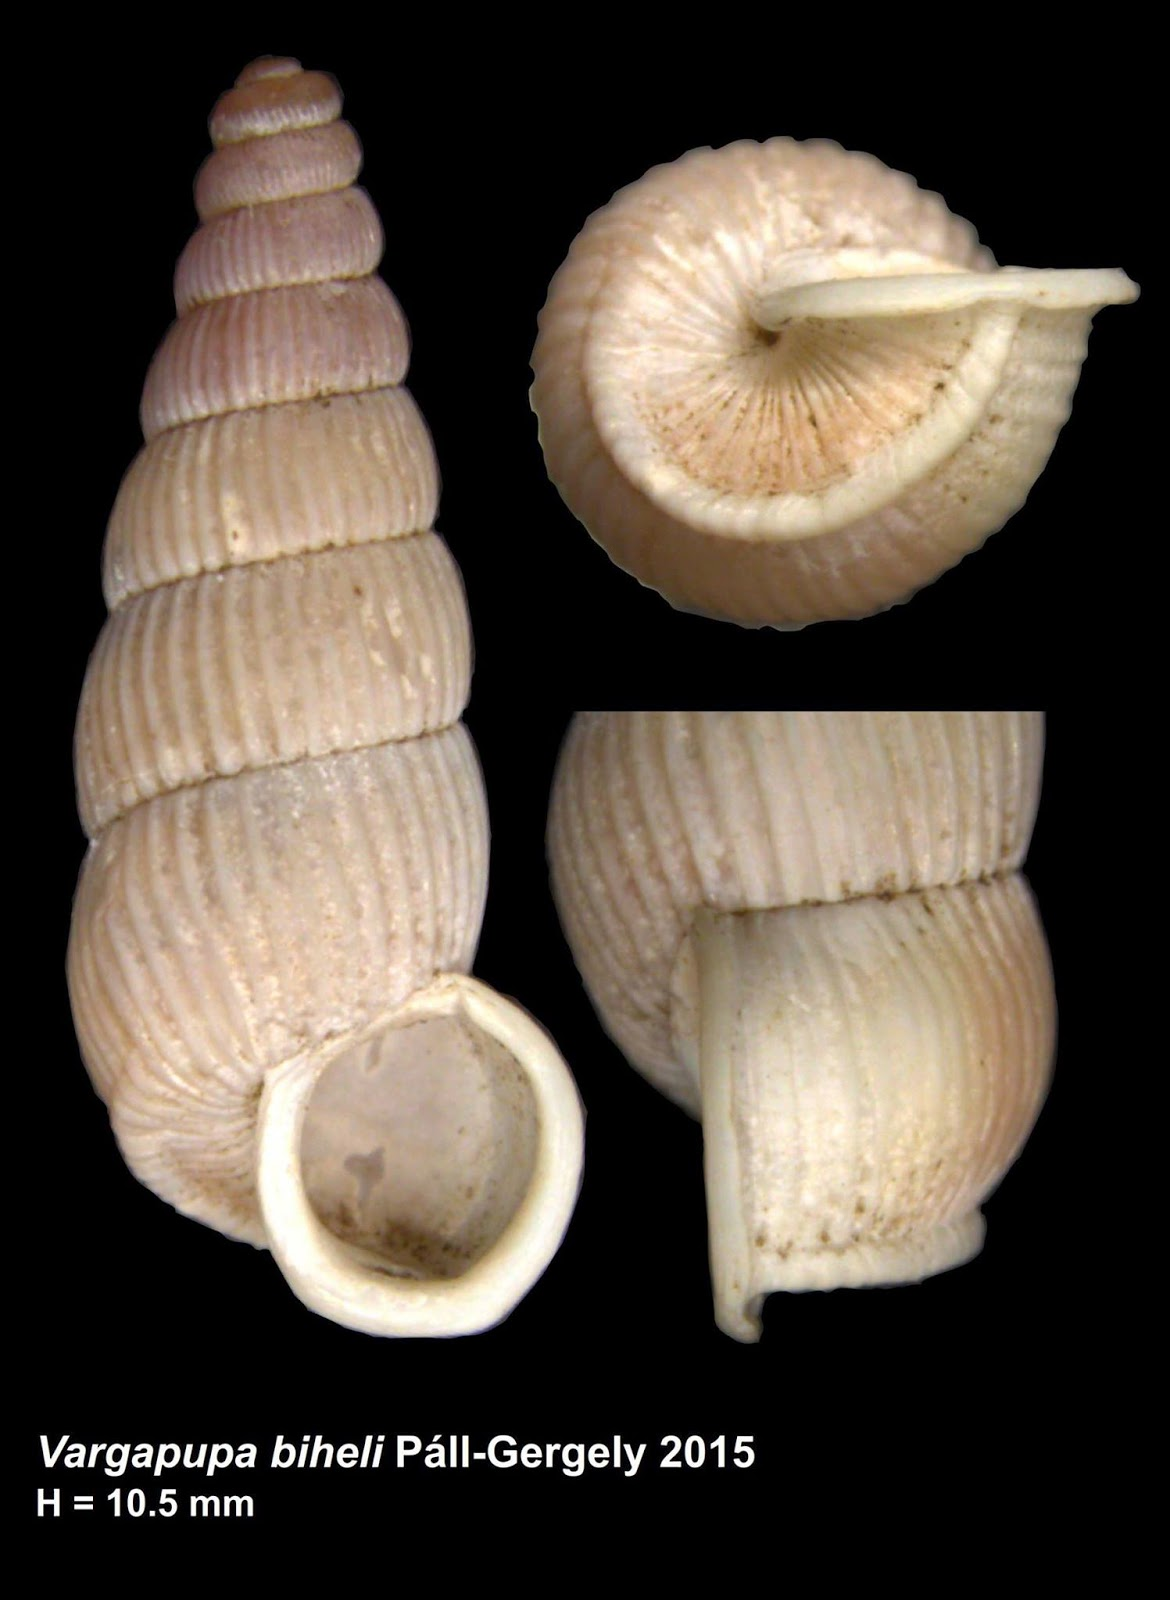 one full and two dissected shells, in a light cream color against a black background